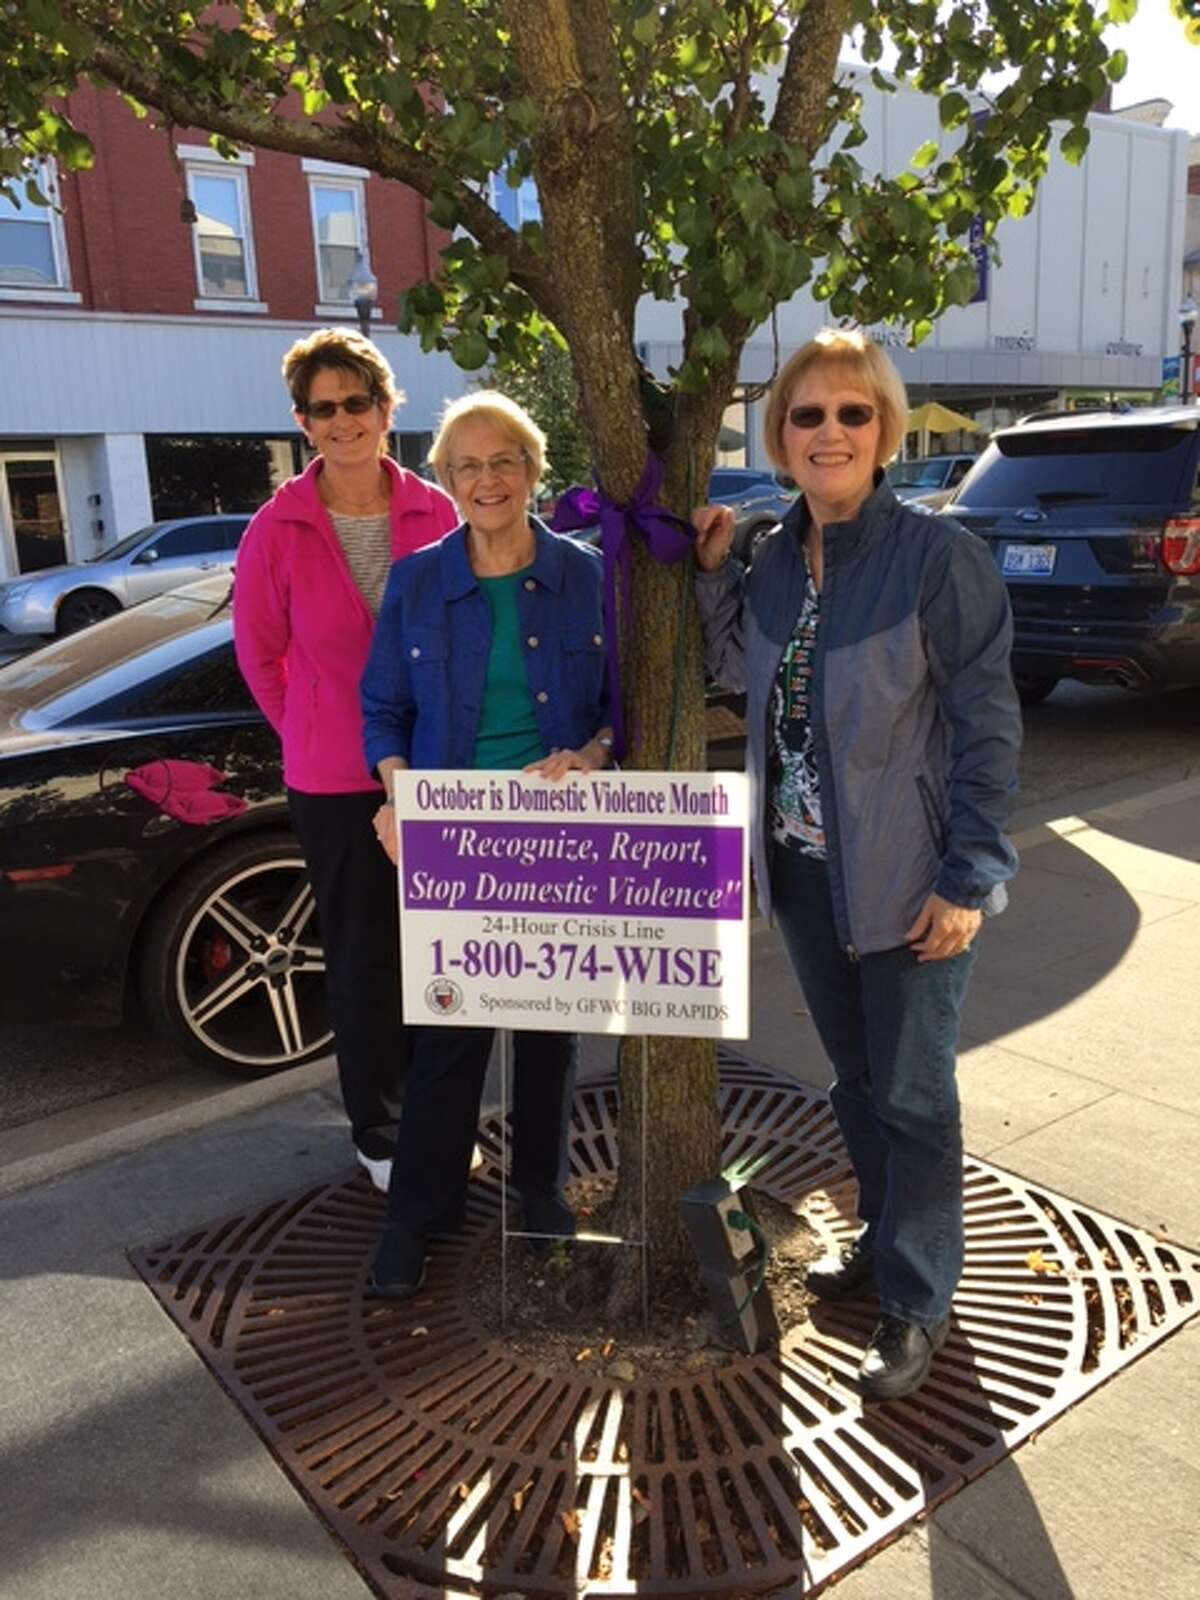 Last year, members of the Big Rapids branch of the General Federation of Women's Club (from left) Beth Martz, Melanie Henry and Dee Van Horn tied purple ribbons to trees in the community in observance of October as Domestic Violence Awareness month. On Monday, Oct. 8, members of GFWC, Zonta Club of Big Rapids and Women's Information Service, Inc. will participate in the Purple Ribbon Campaign by tying small ribbons on trees and shrubs throughout Big Rapids. (Courtesy photo)